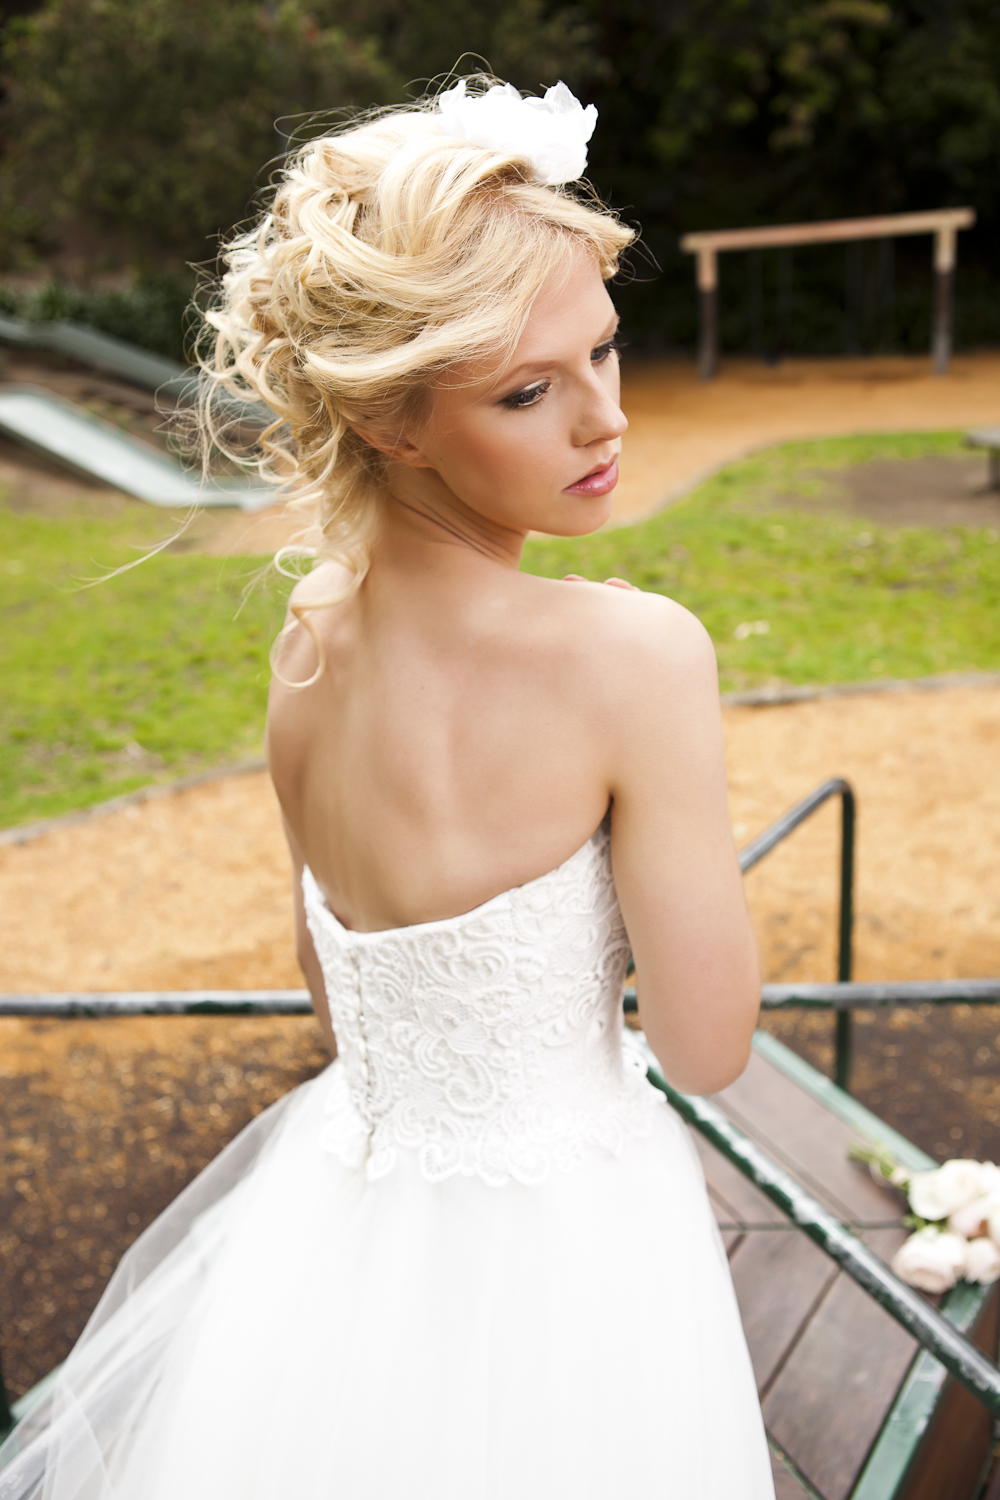 Rose bridal gown design_Tanya Anic _photography_Luke Drew_ 2.jpg